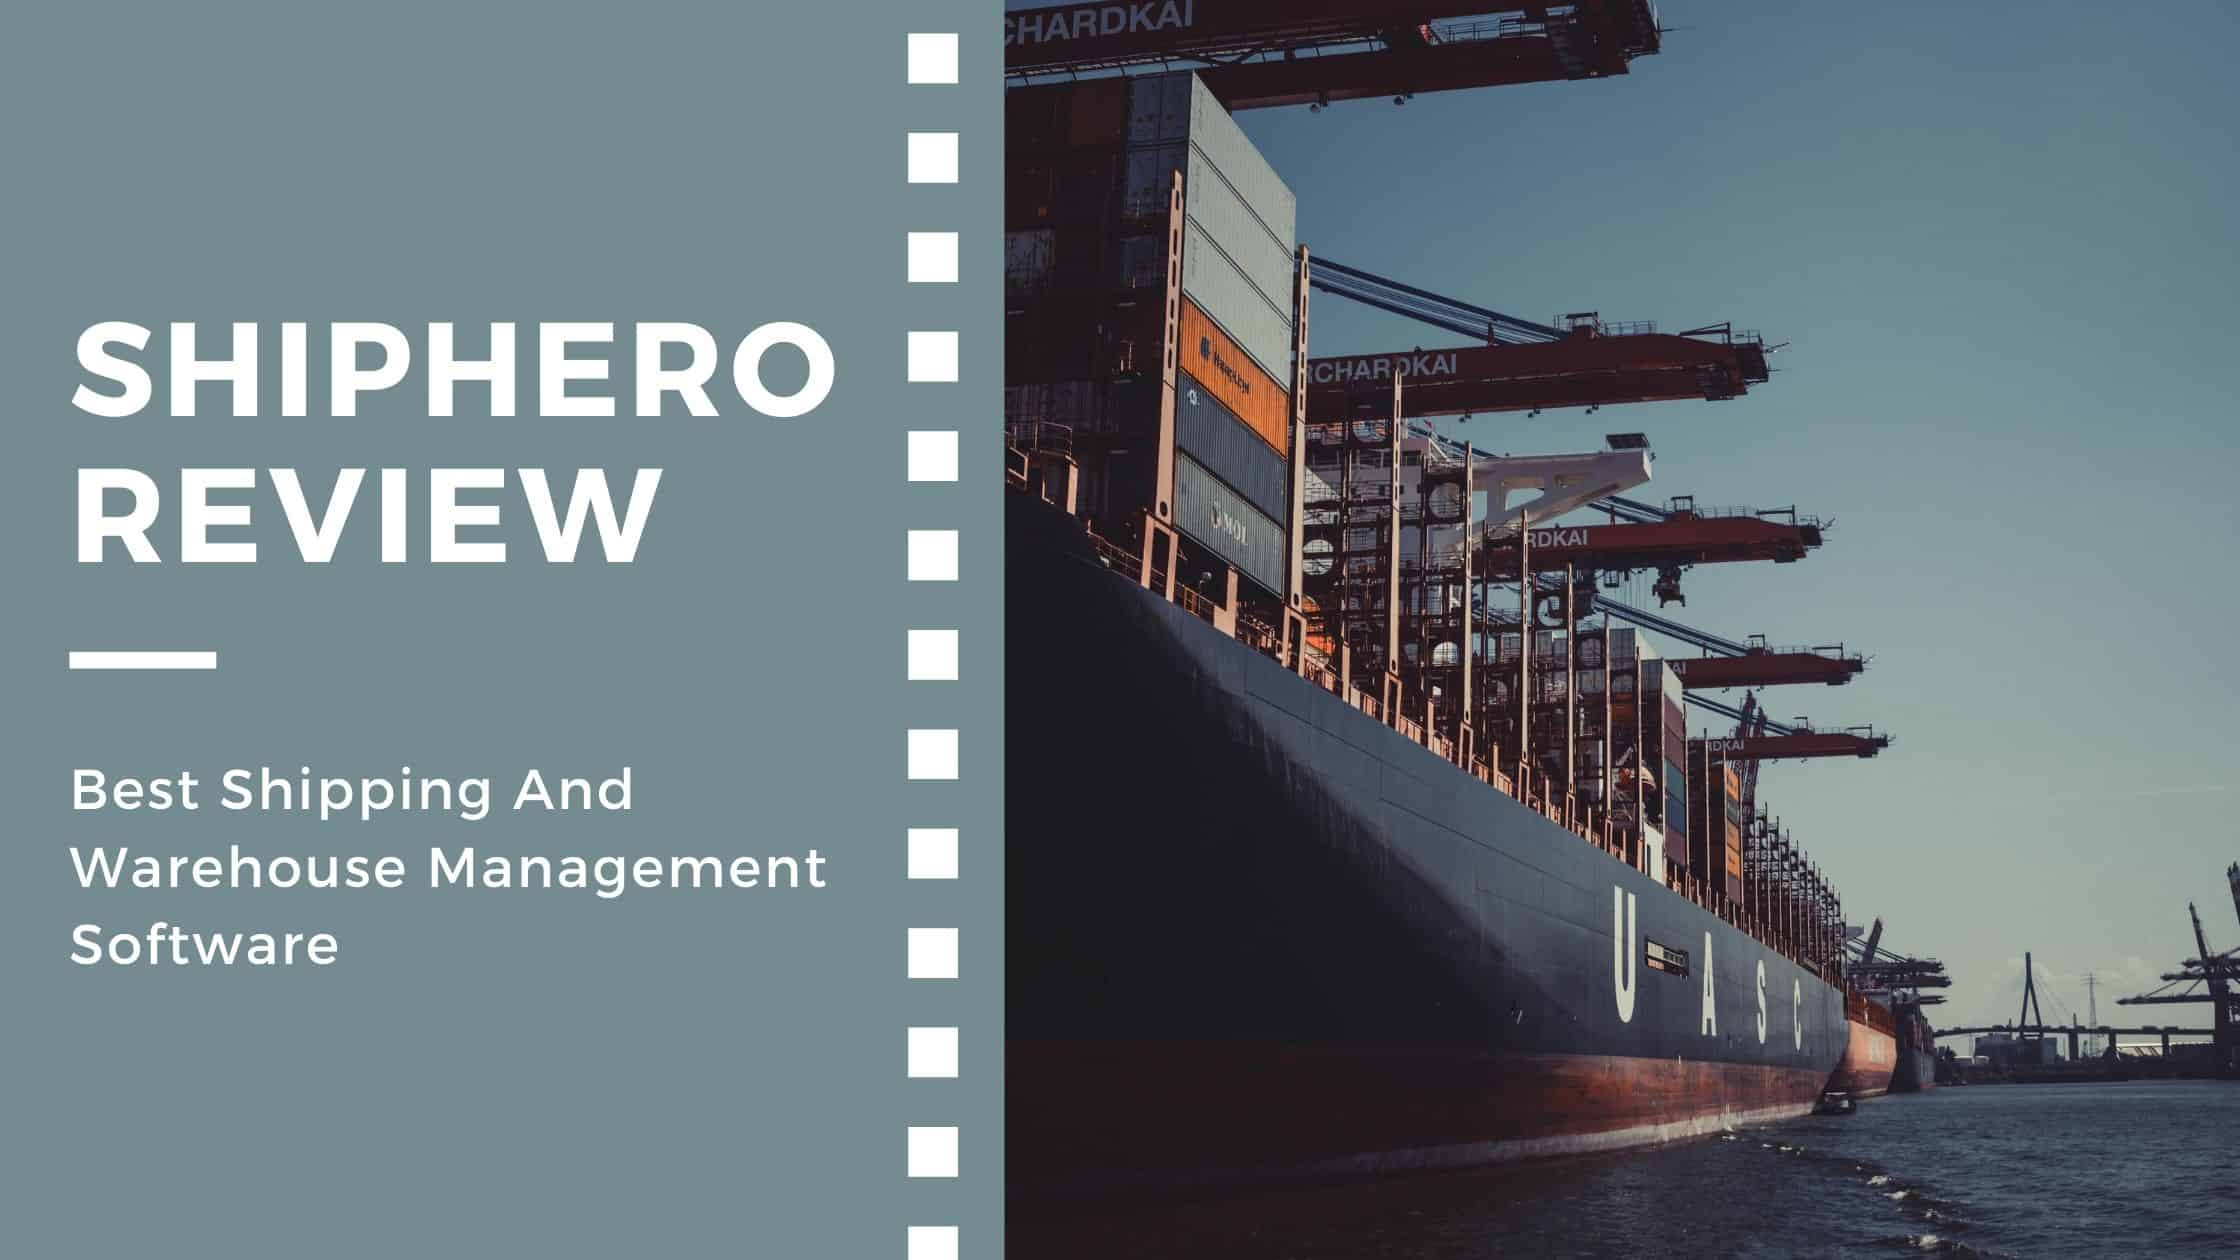 ShipHero Review 2021 - Best Shipping And Warehouse Management Software